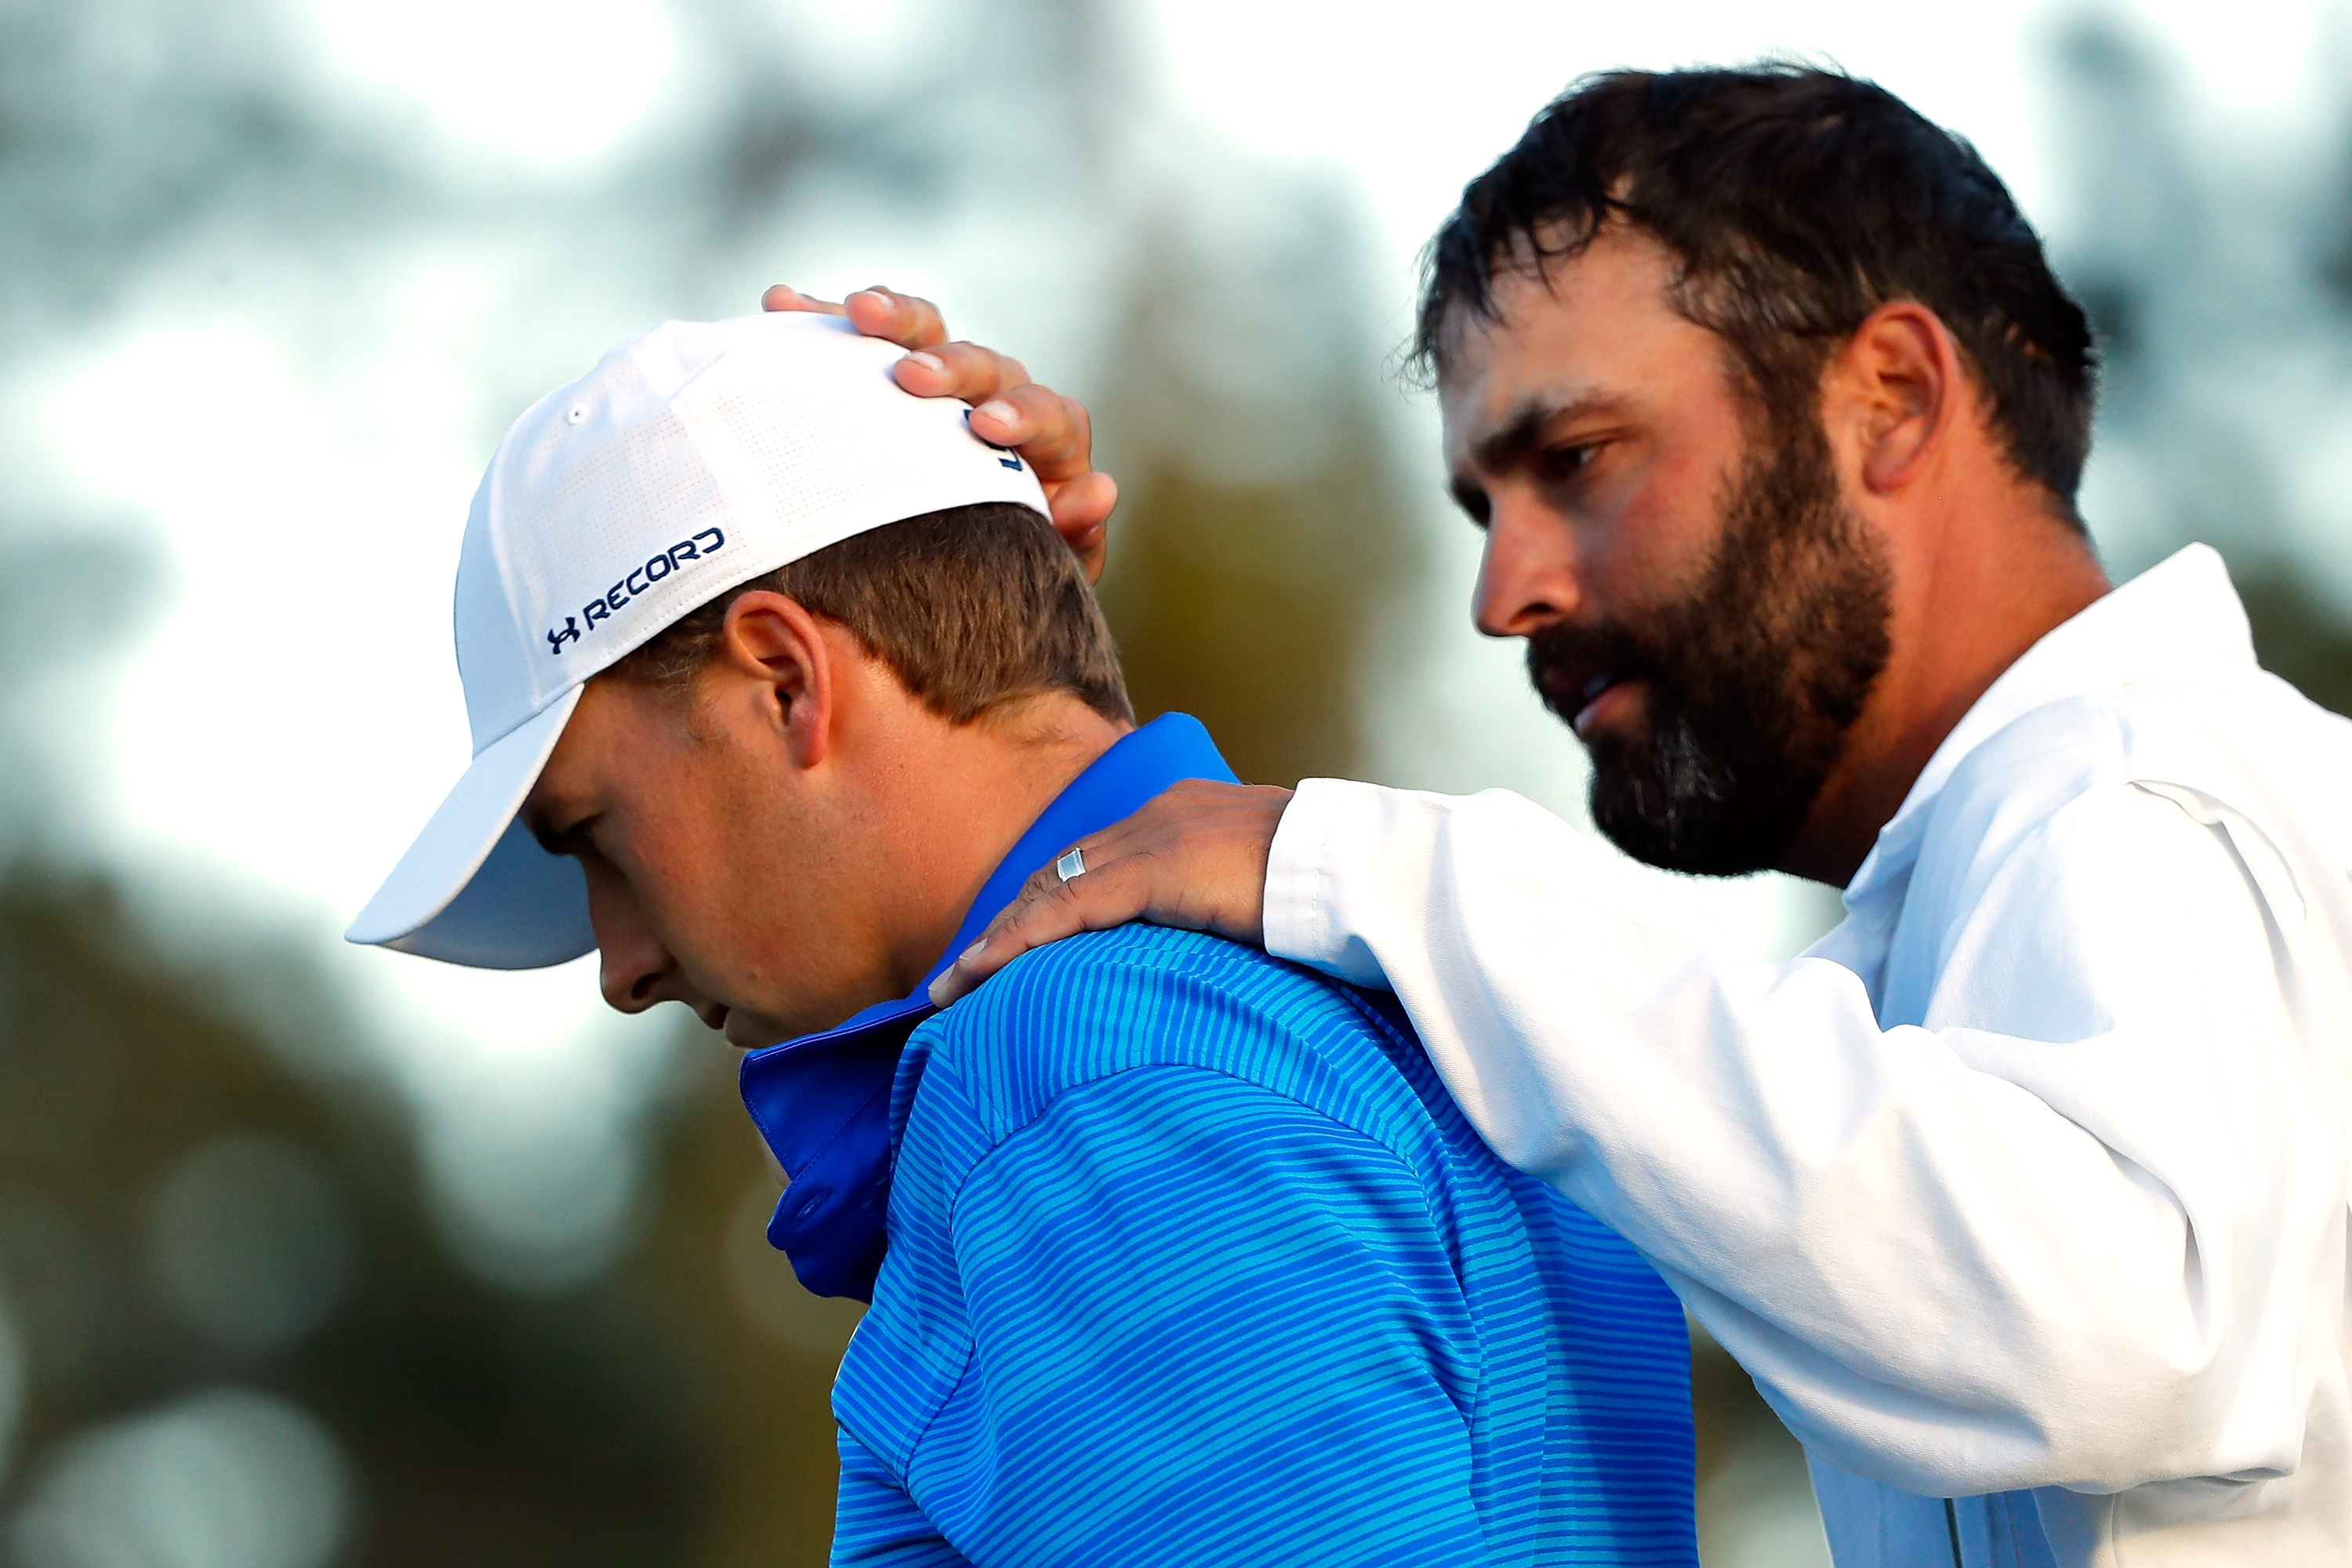 Michael Greller, Jordan Spieth's caddie, tries to comfort the young star after Spieth's meltdown on the back nine at the Masters on Sunday. (Getty Images)